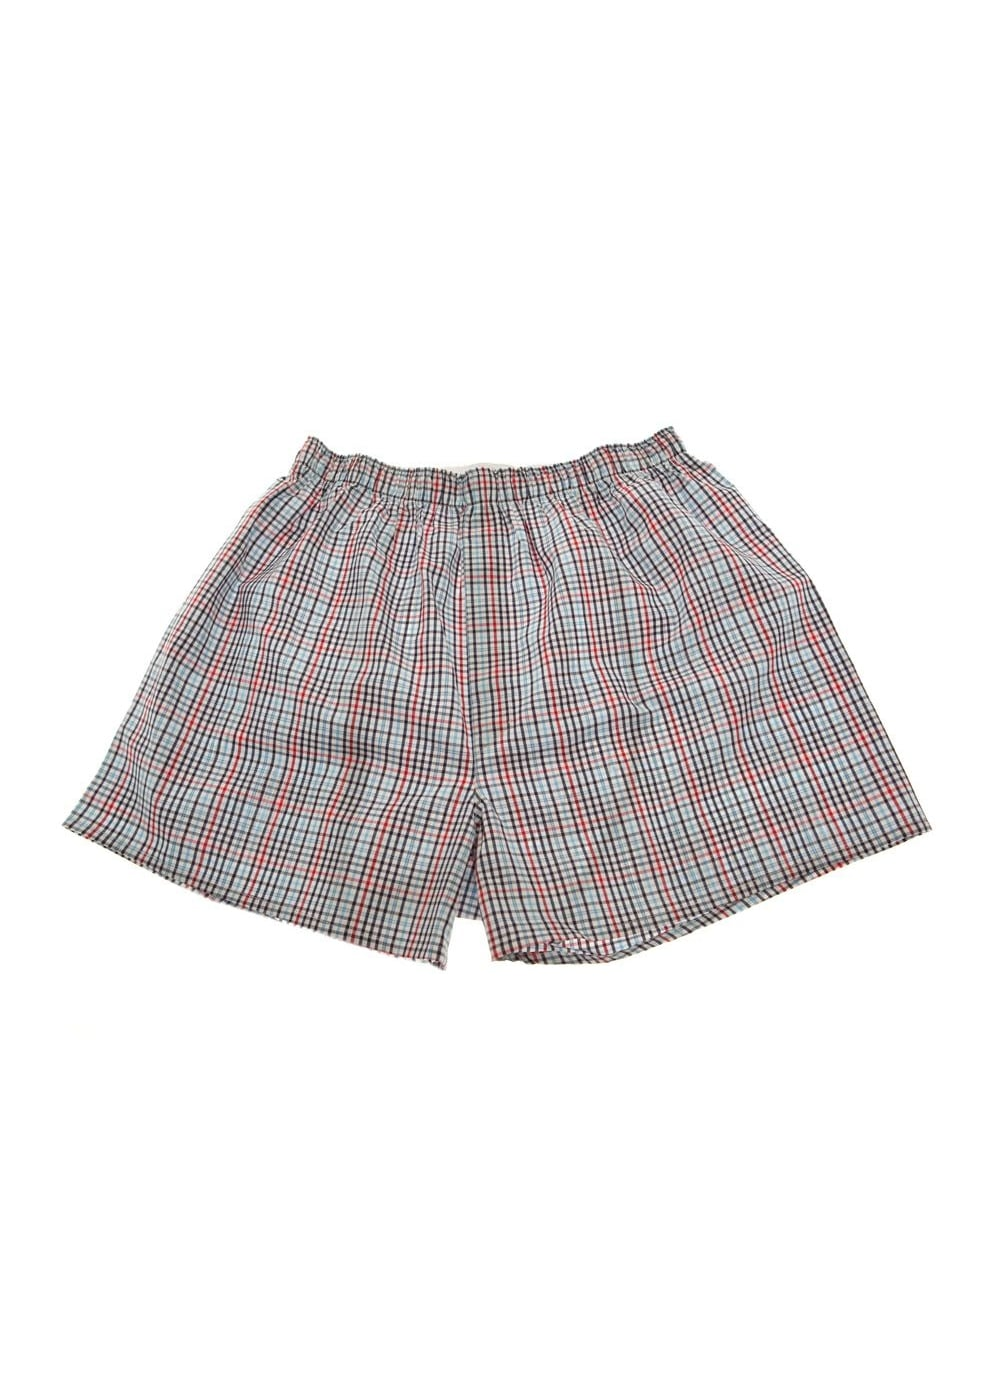 Sunspel Gingham Check Boxers  Large Image